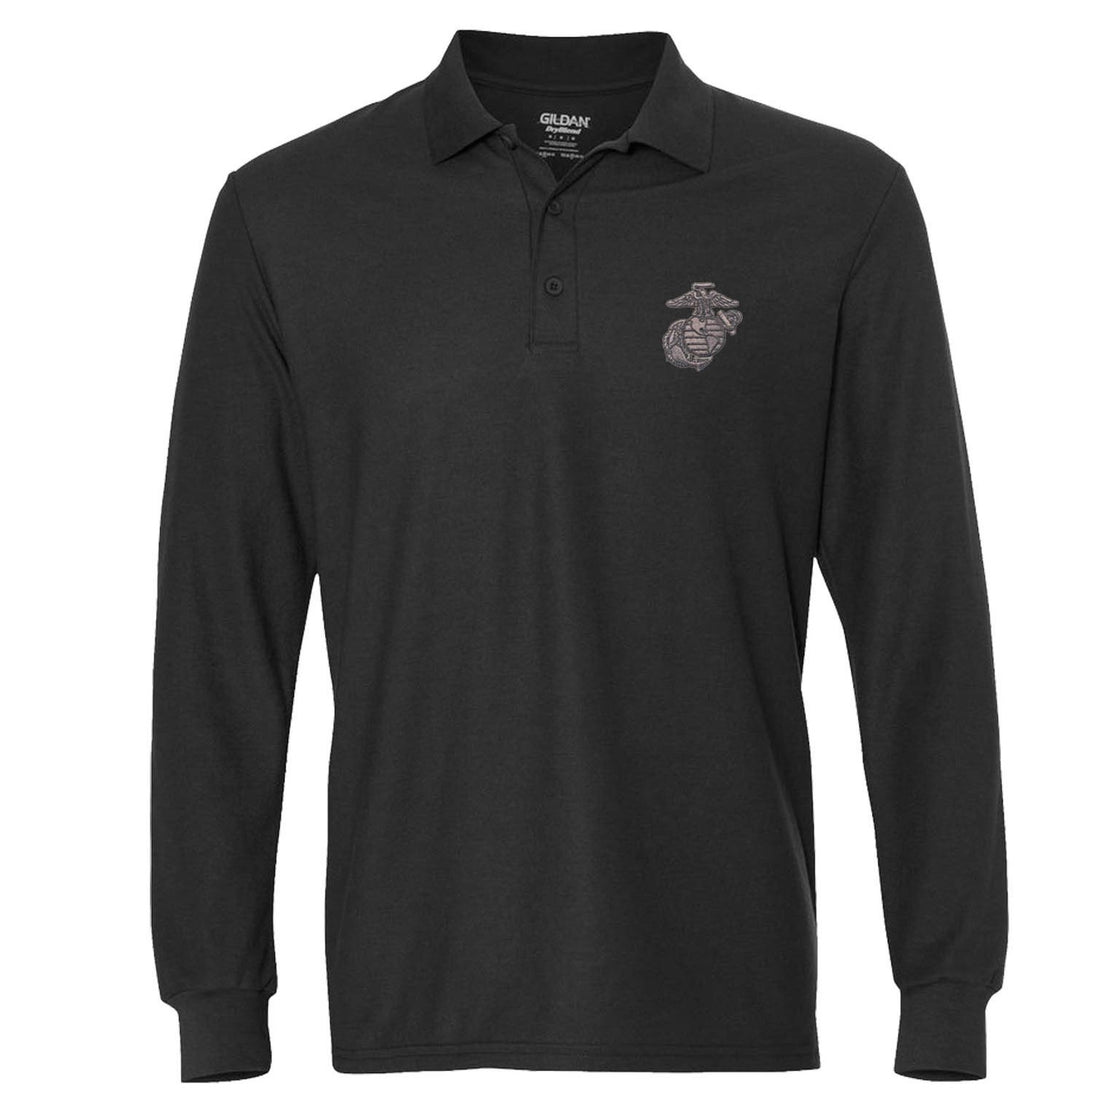 Gunmetal Embroidered Long Sleeve Polo (MULTIPLE COLORS) - Marine Corps Direct  - 1